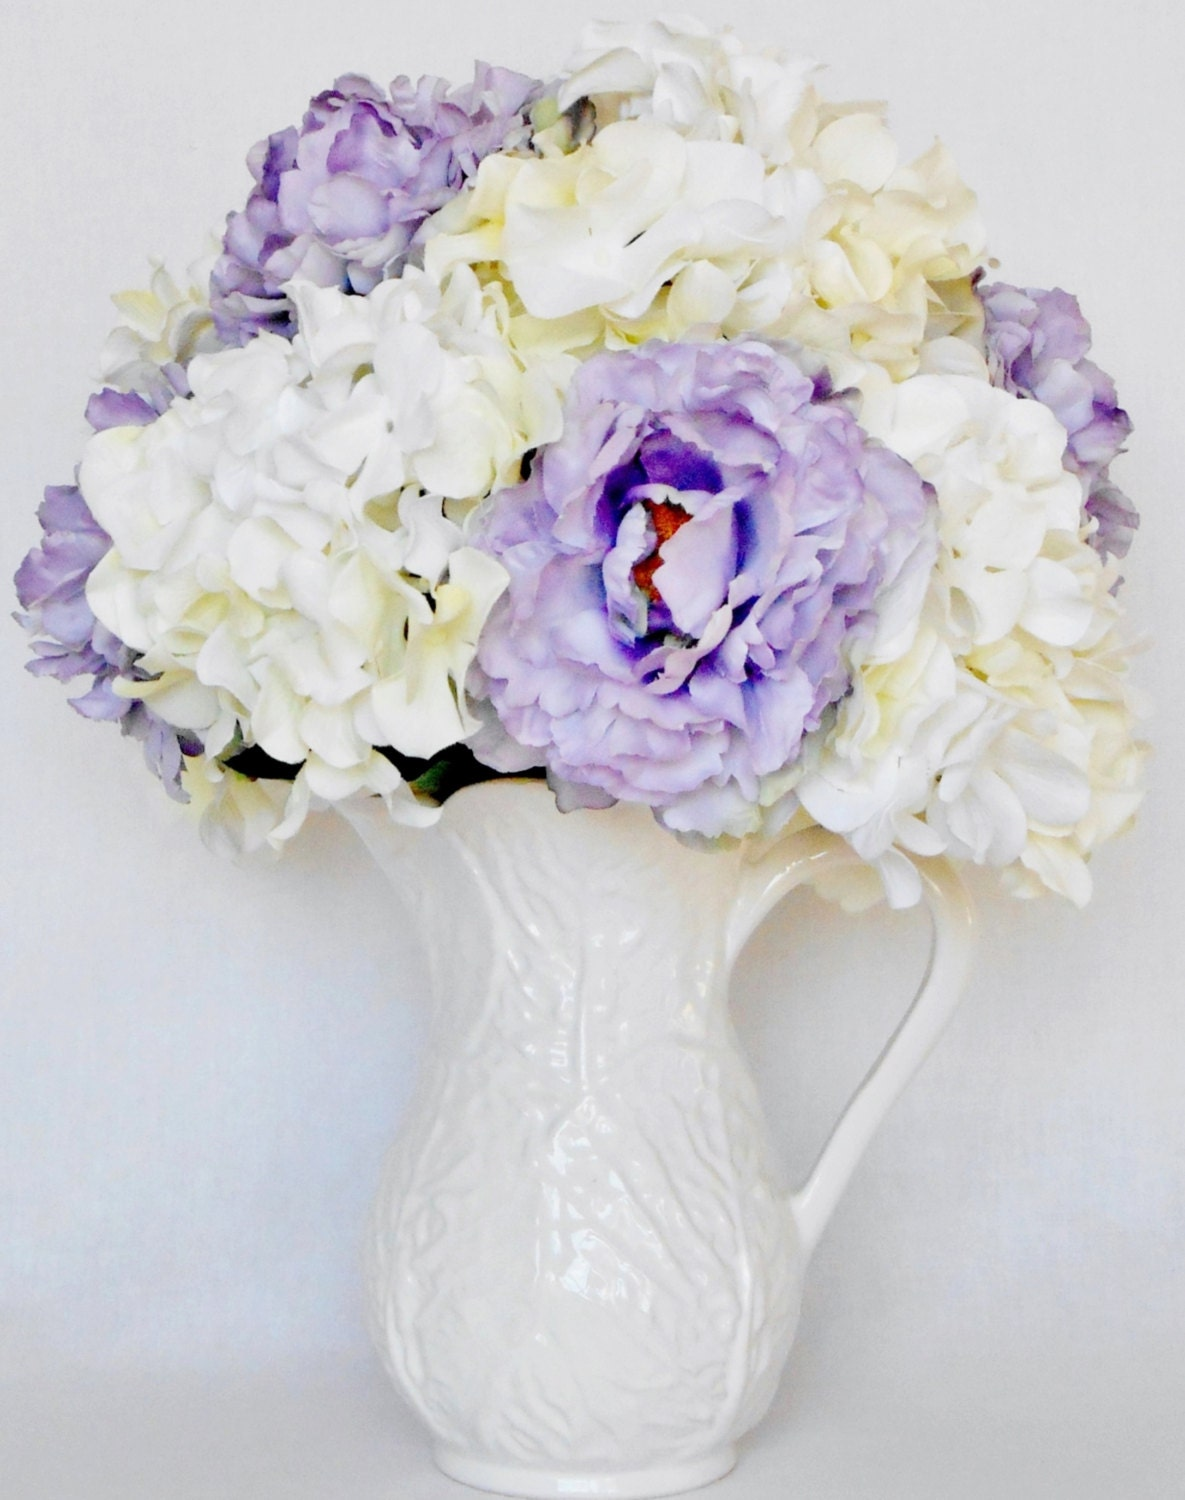 Artificial Flower Arrangement Lavender Peonies \u0026 White